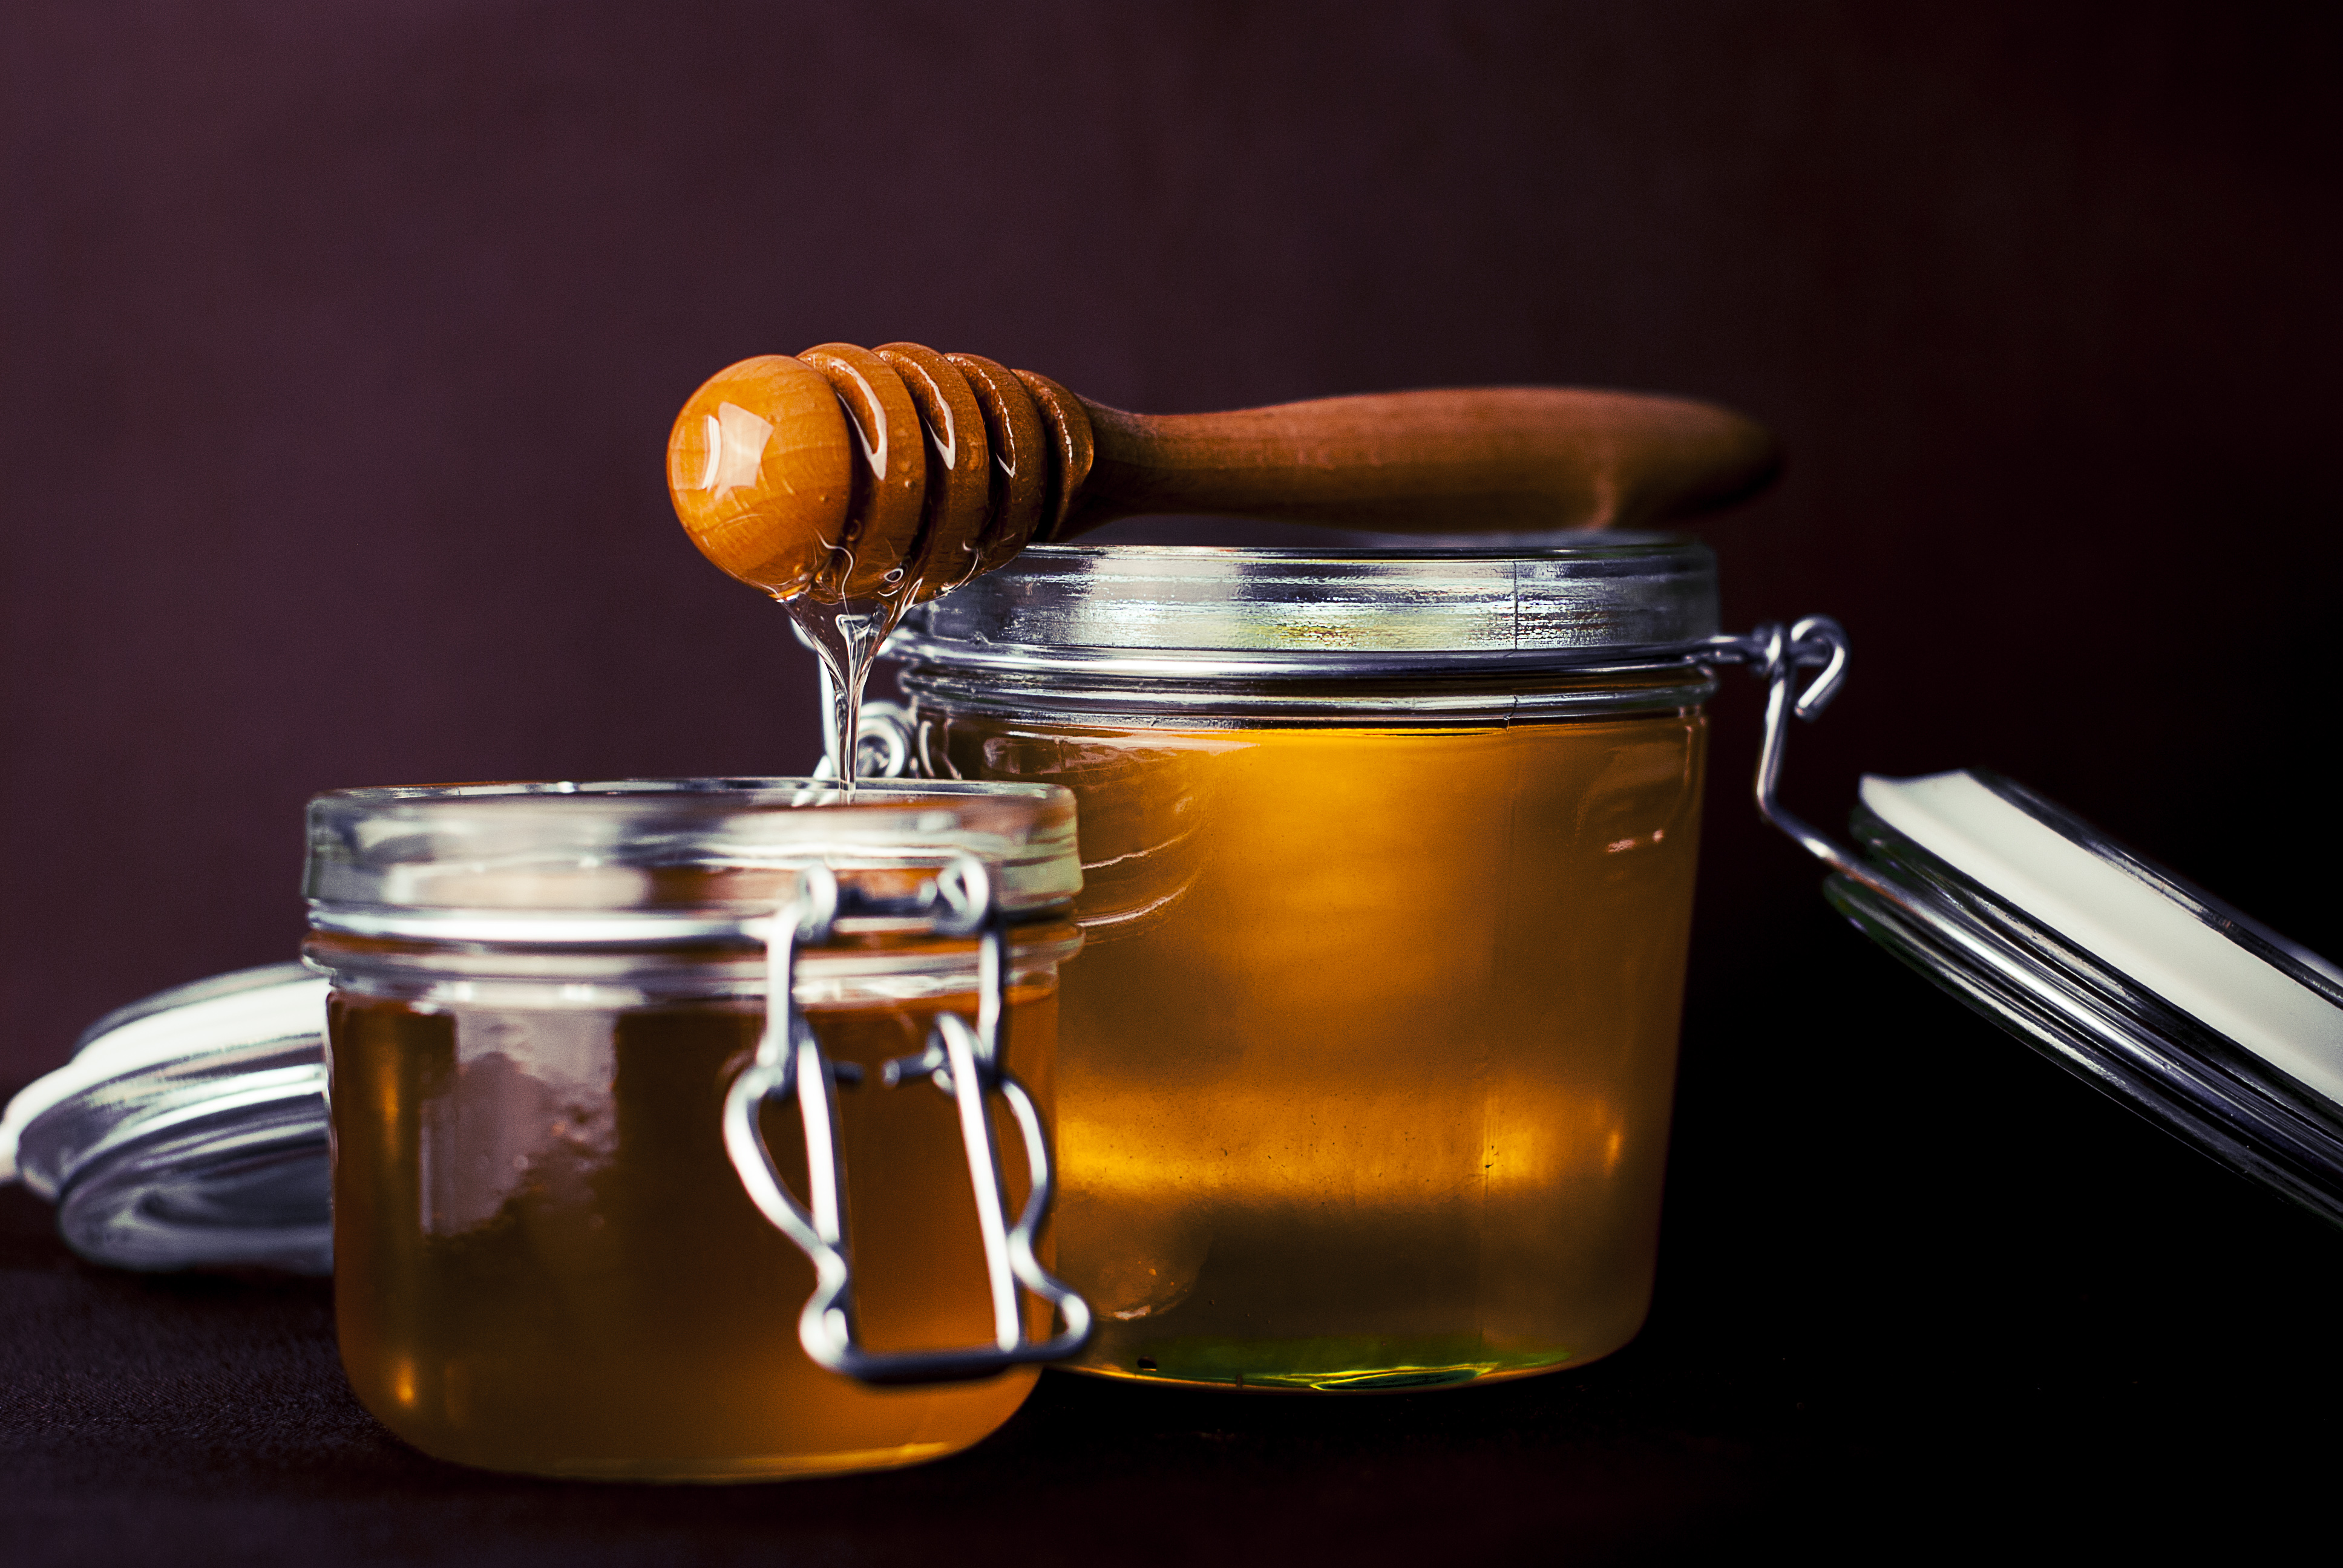 spoon-honey-jar.jpg